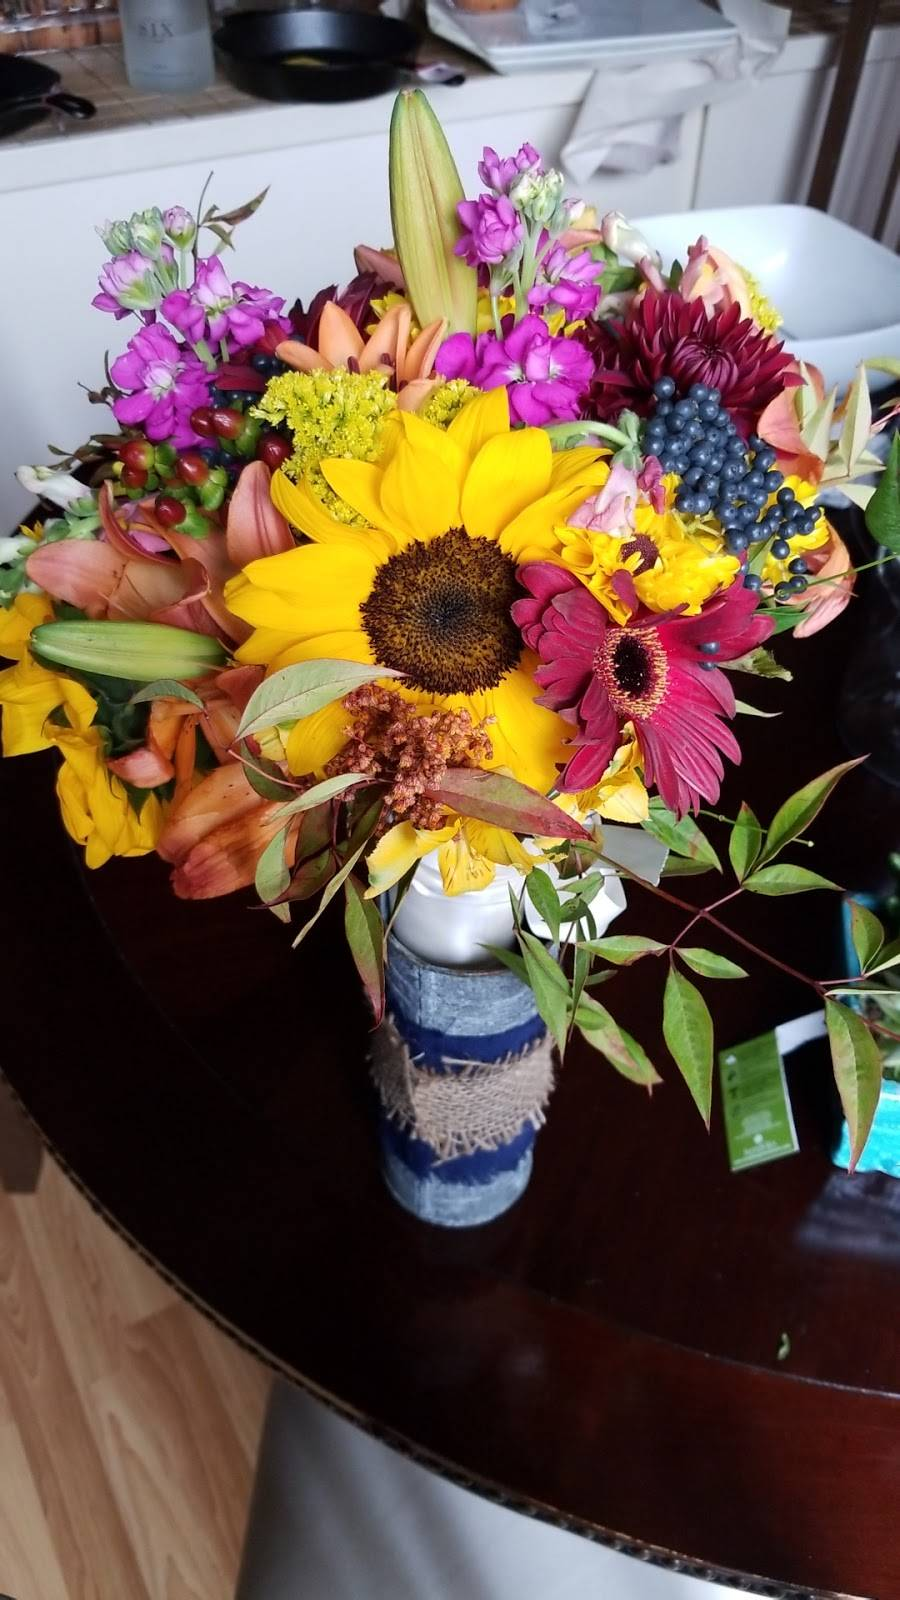 Hummingbird Floral & Gifts - florist  | Photo 9 of 9 | Address: 4001 Rice St, Shoreview, MN 55126, USA | Phone: (651) 486-0403